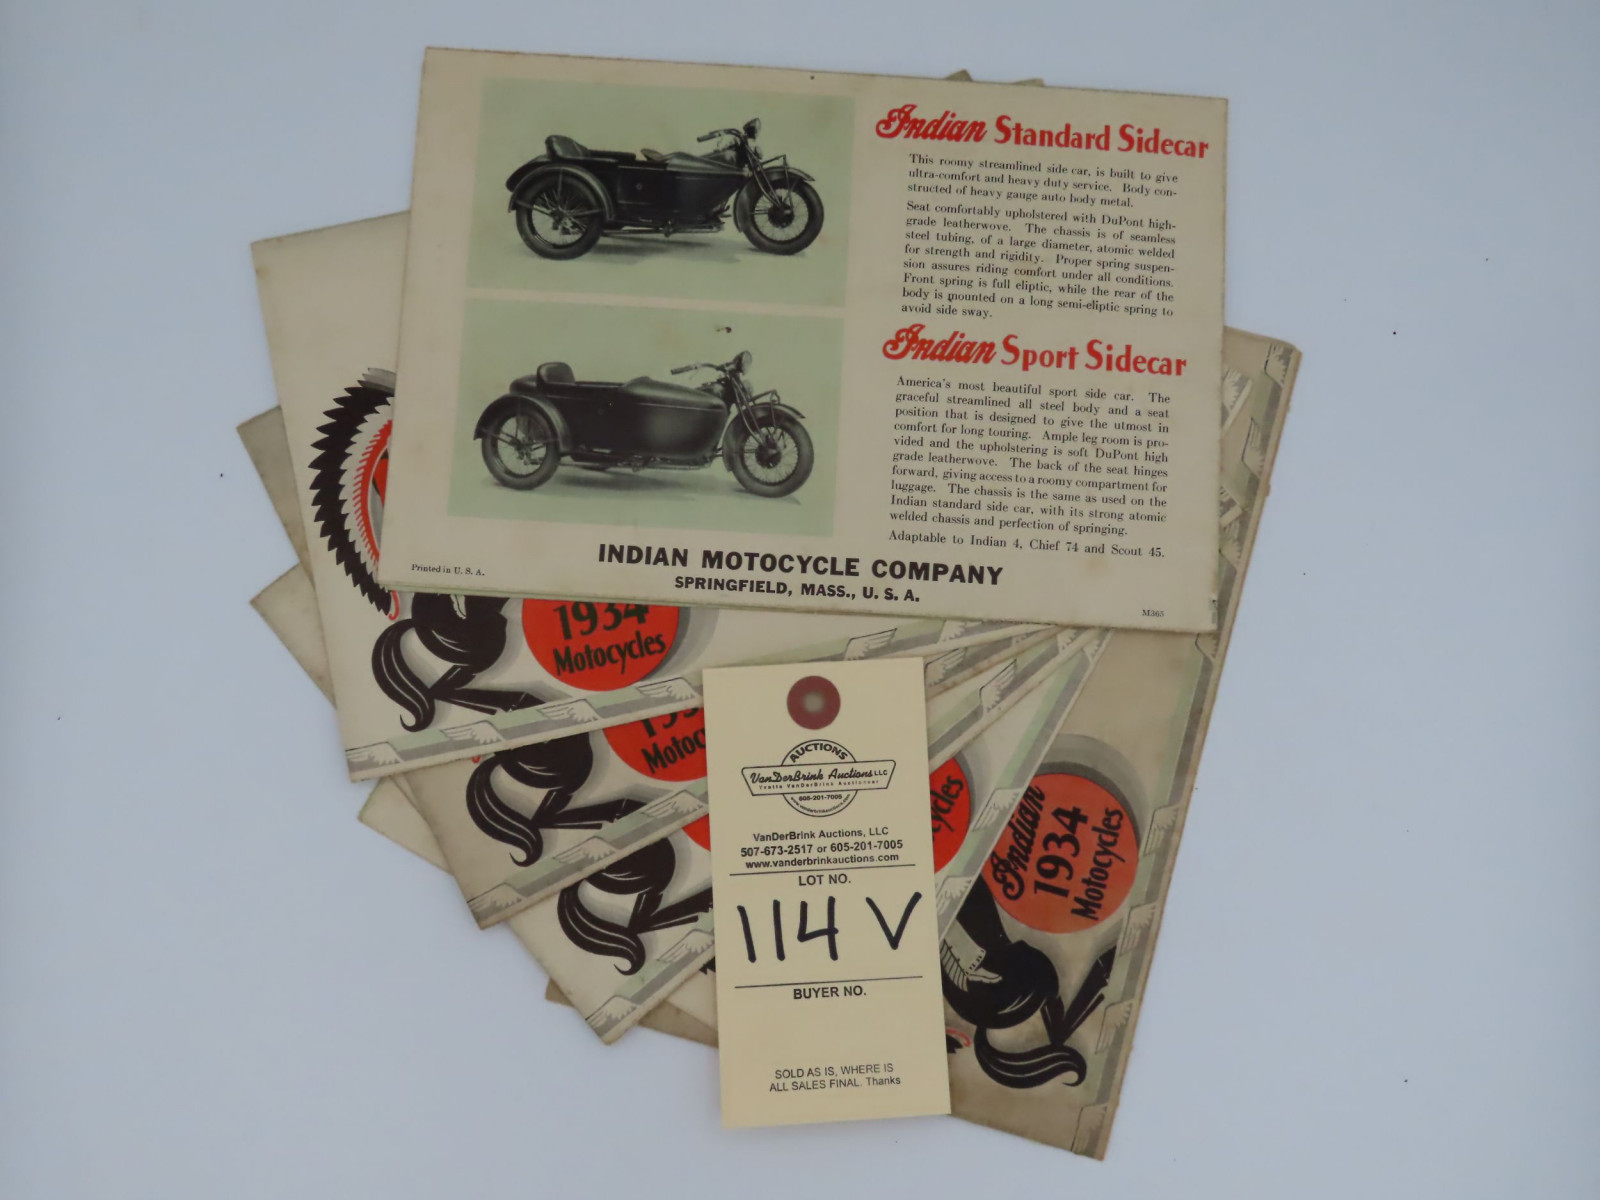 1934 Indian Motorcycles dealer manual - Image 3